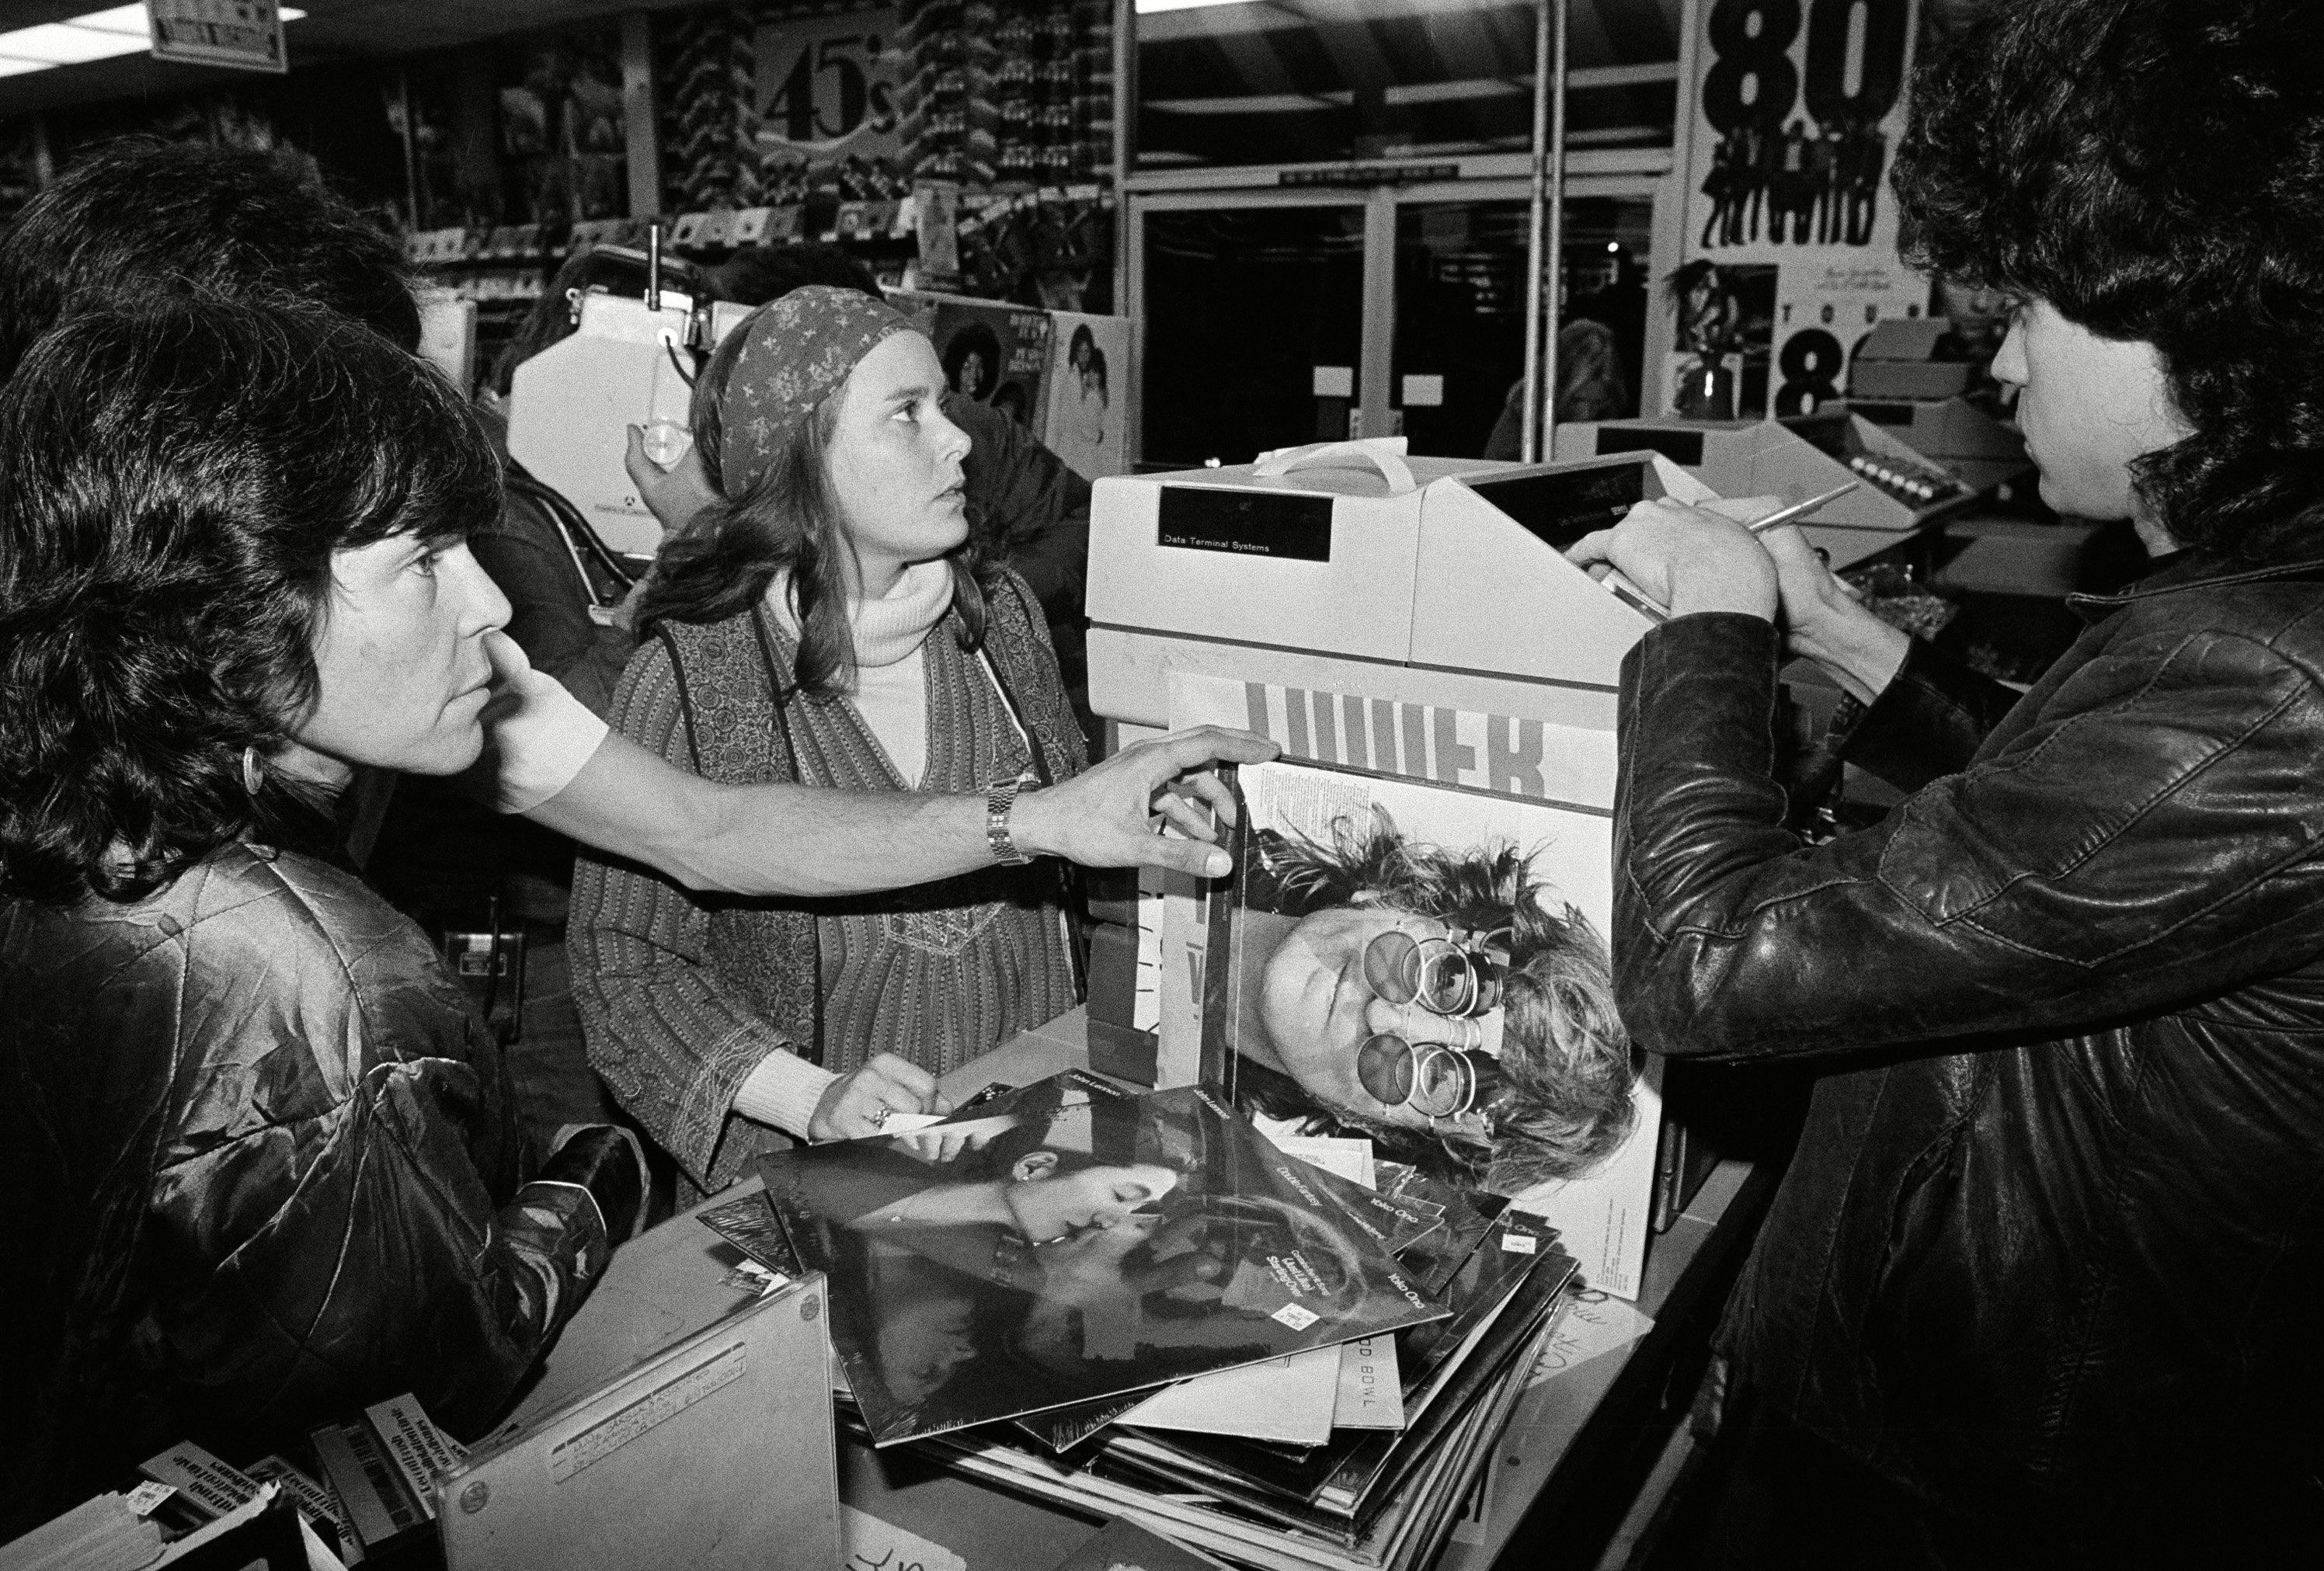 Kupferman Horowitz Lyn Kupferman, right, and her friend Shiela Horowitz wait as a Tower Records clerk rings up the purchase of over $200 in Beatles and John Lennon albums, in Los Angeles 8 Dec 1980